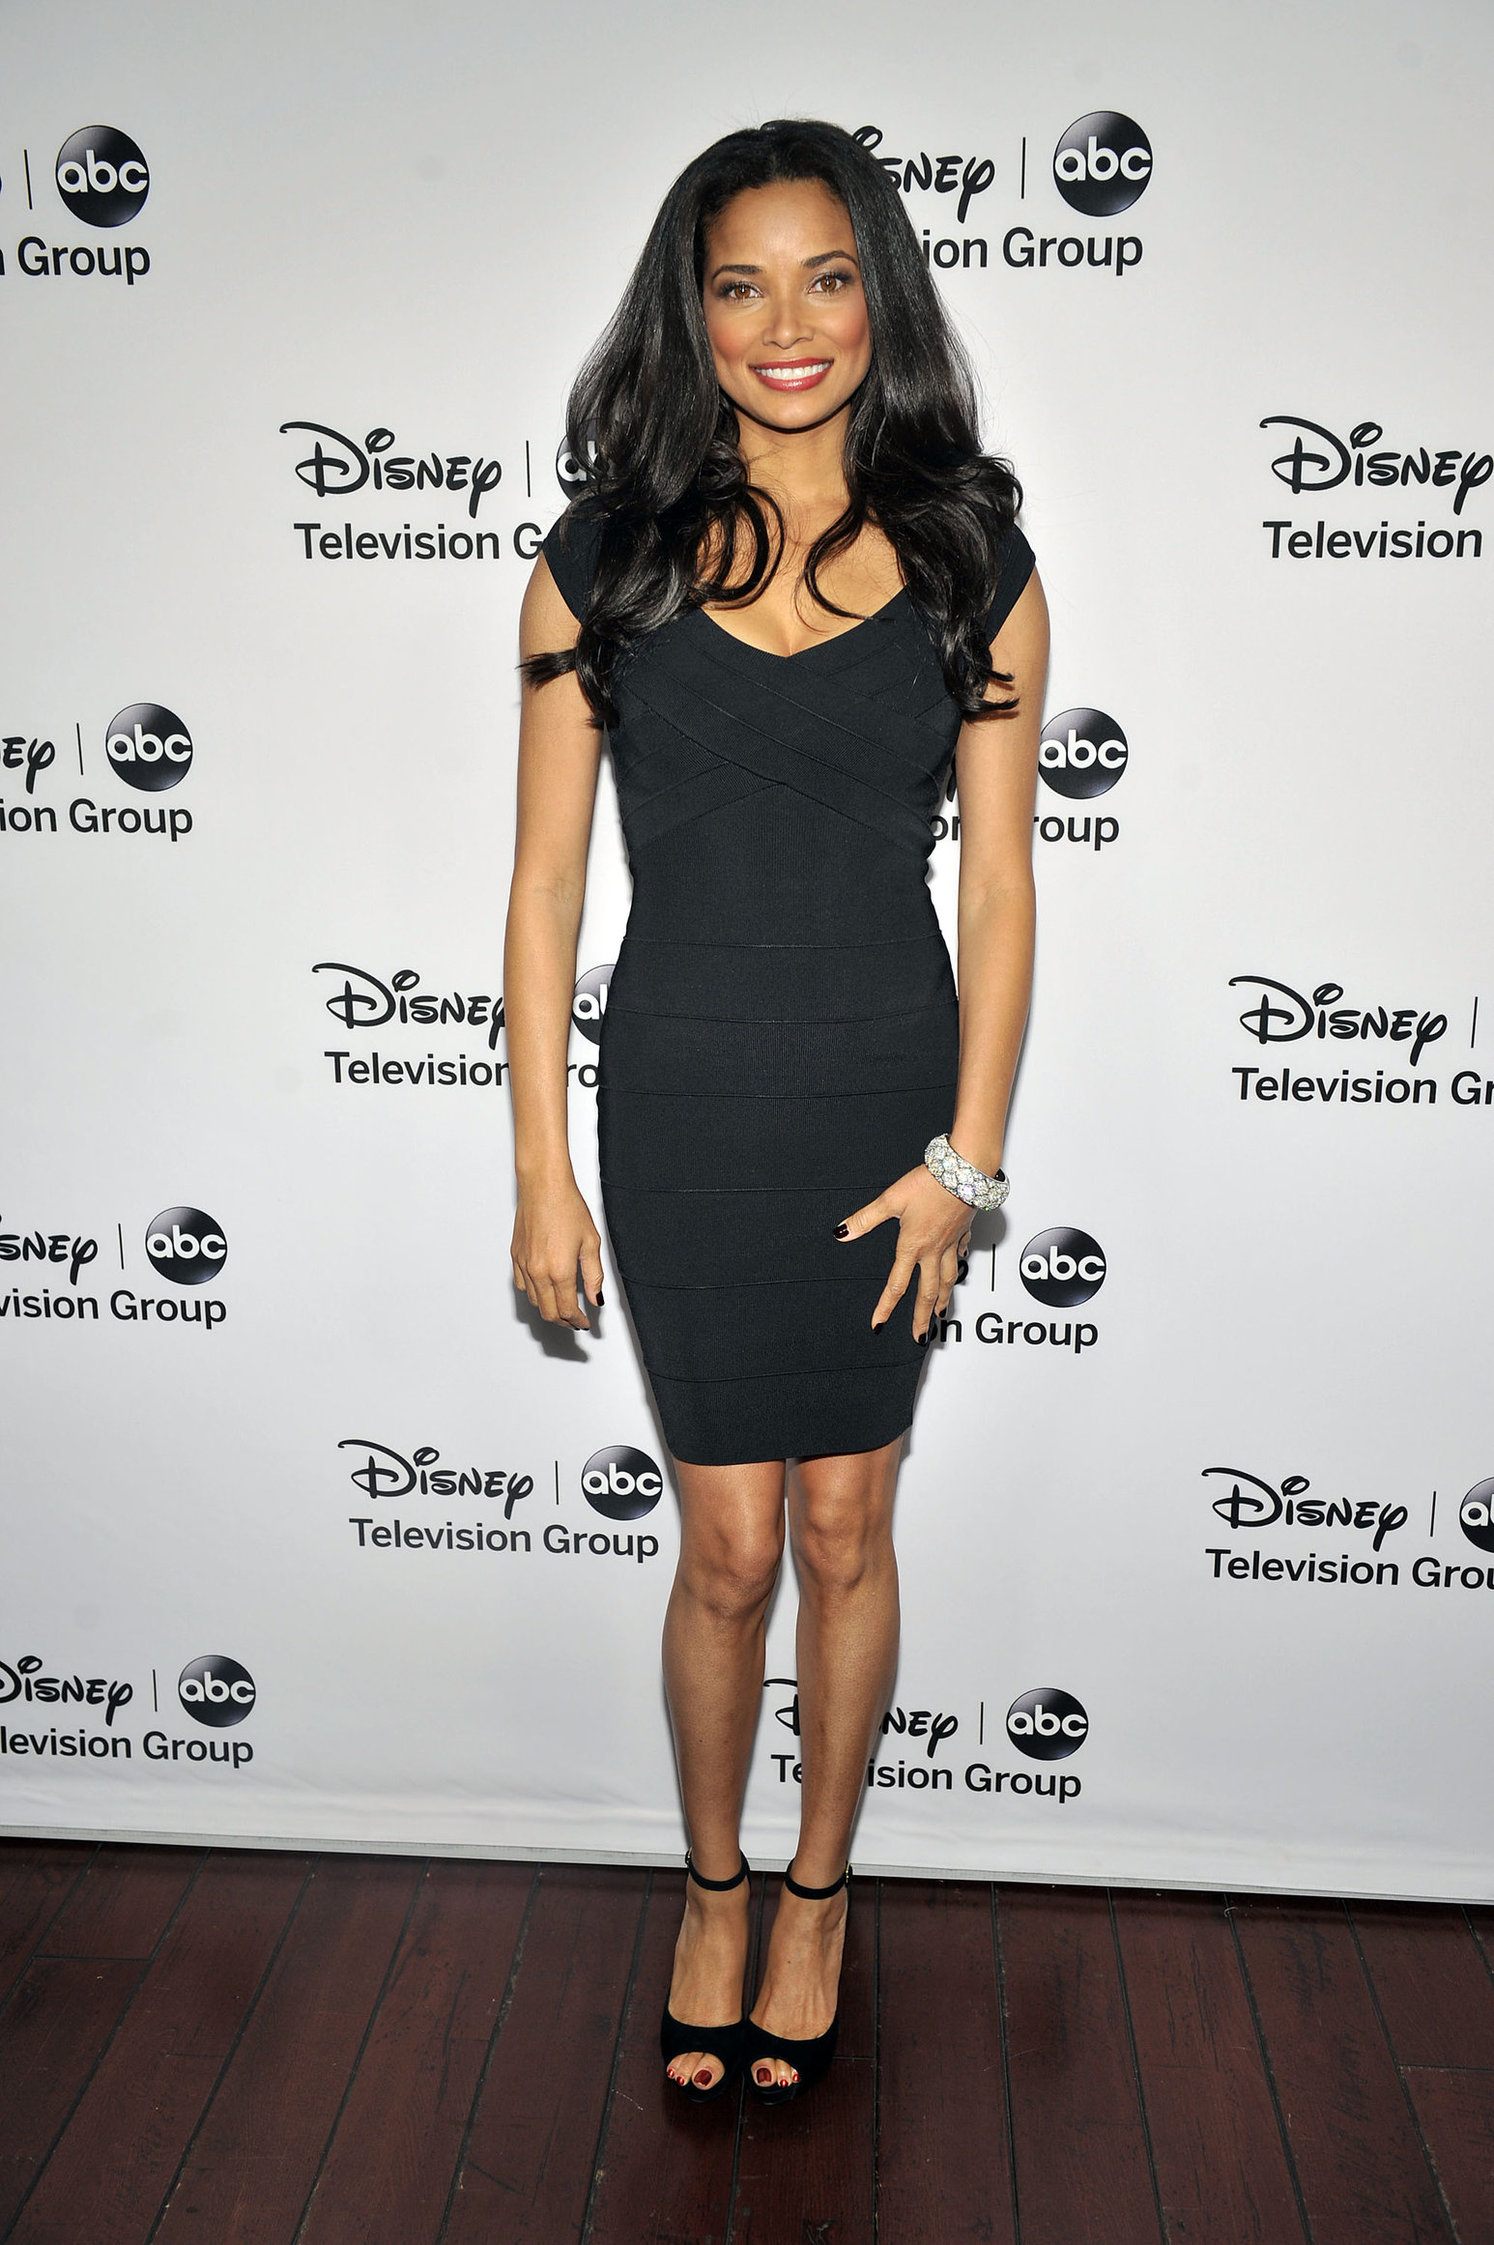 Rochelle Aytes 2013 TCA Winter Press Tour - Disney ABC Television Group Red Carpet Gala (Jan 10, 2013)